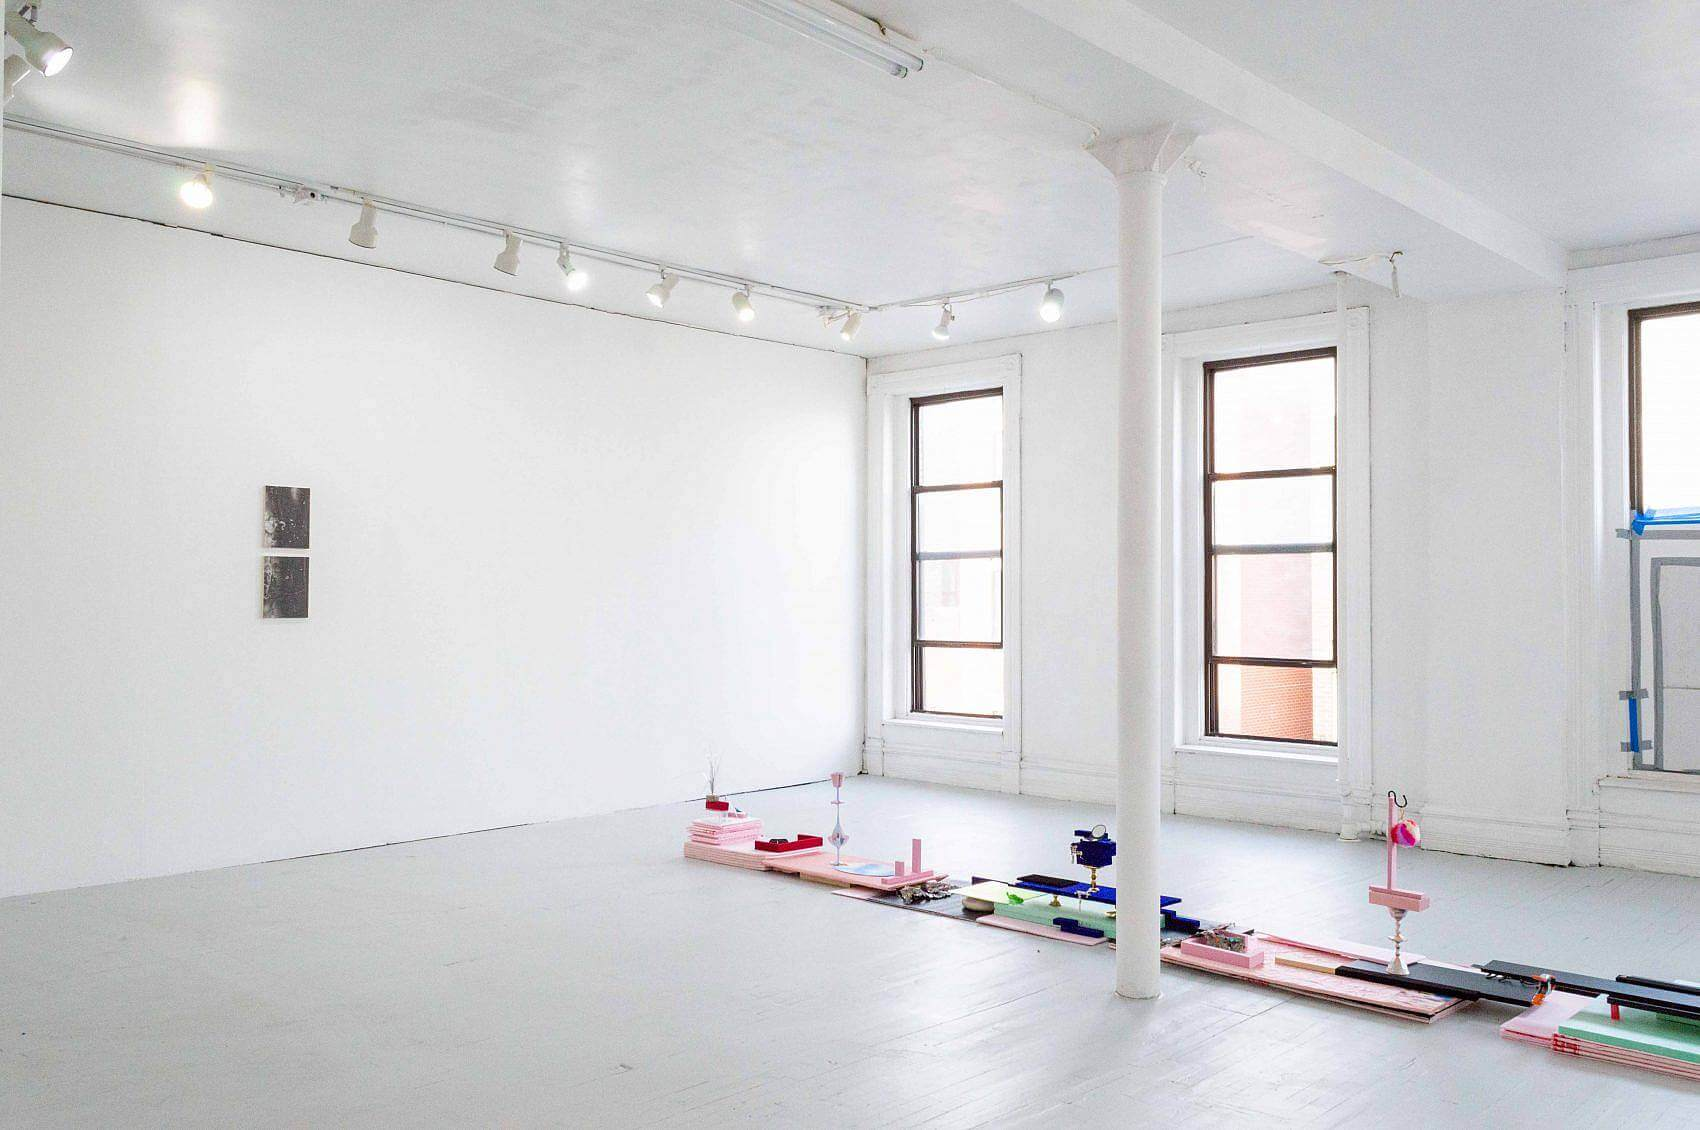 This is an installation shot of a corner of the exhibition. On the left wall is Zack Ingram's